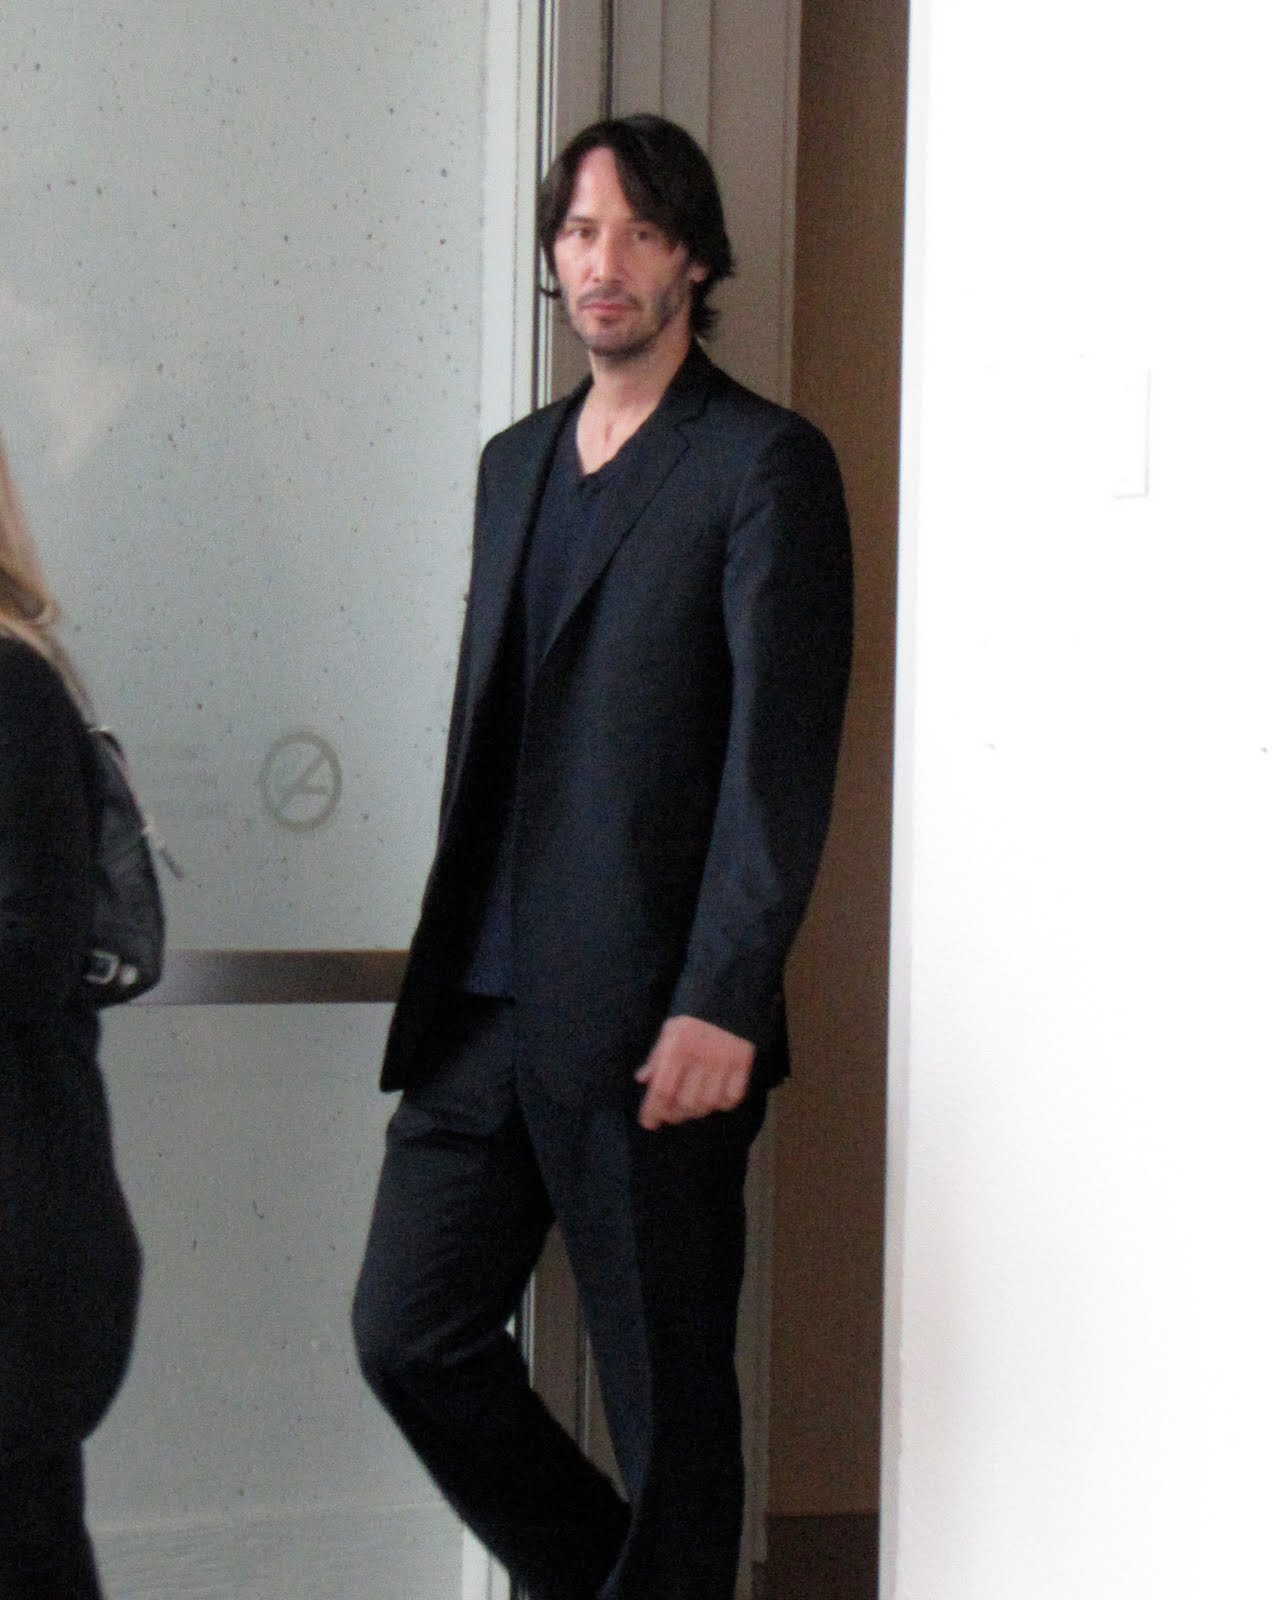 http://4.bp.blogspot.com/_5_7myy6XZuw/TJBpgOOZO6I/AAAAAAAAEbg/ZRL0Mtal3bI/s1600/Keanu+Reeves+at+Henry%27s+Crime+Press+Conference.jpg